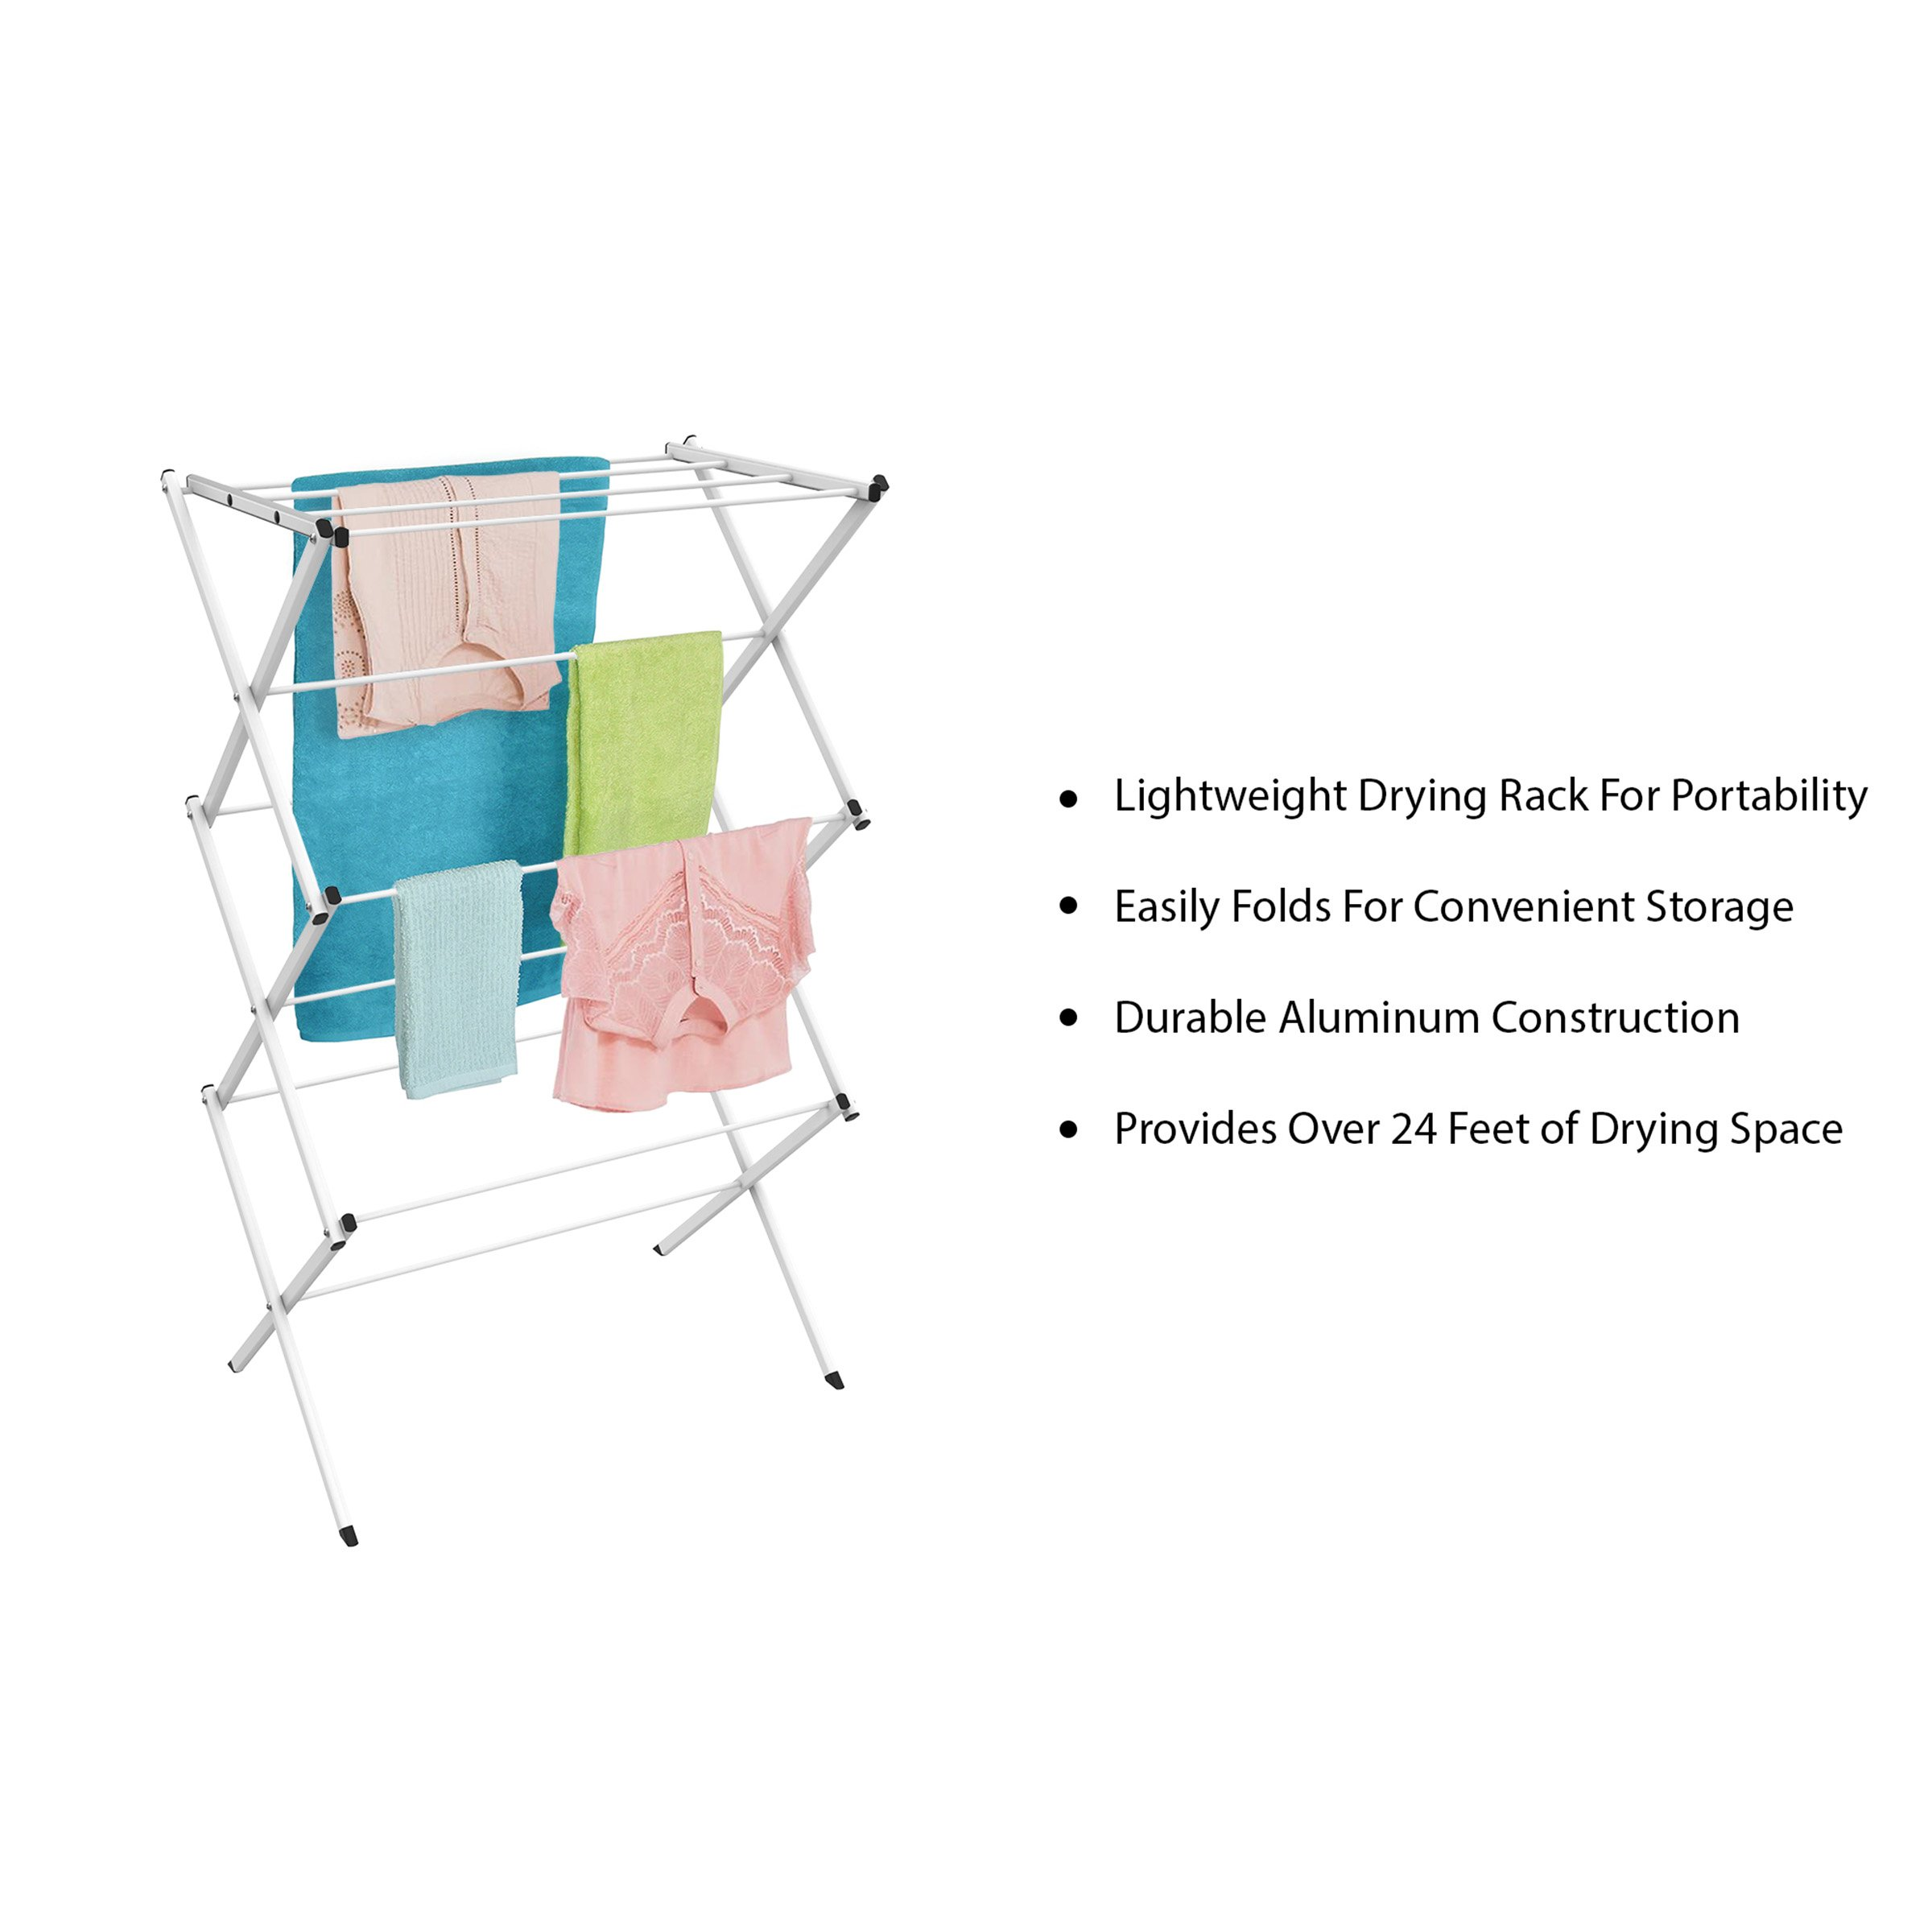 Lavish Home Clothes Drying Rack-24ft. of Drying Space-Collapsible and Compact for Indoor/Outdoor Use-Portable Stand for Hanging, Air-Drying Laundry by Lavish Home (Image #3)